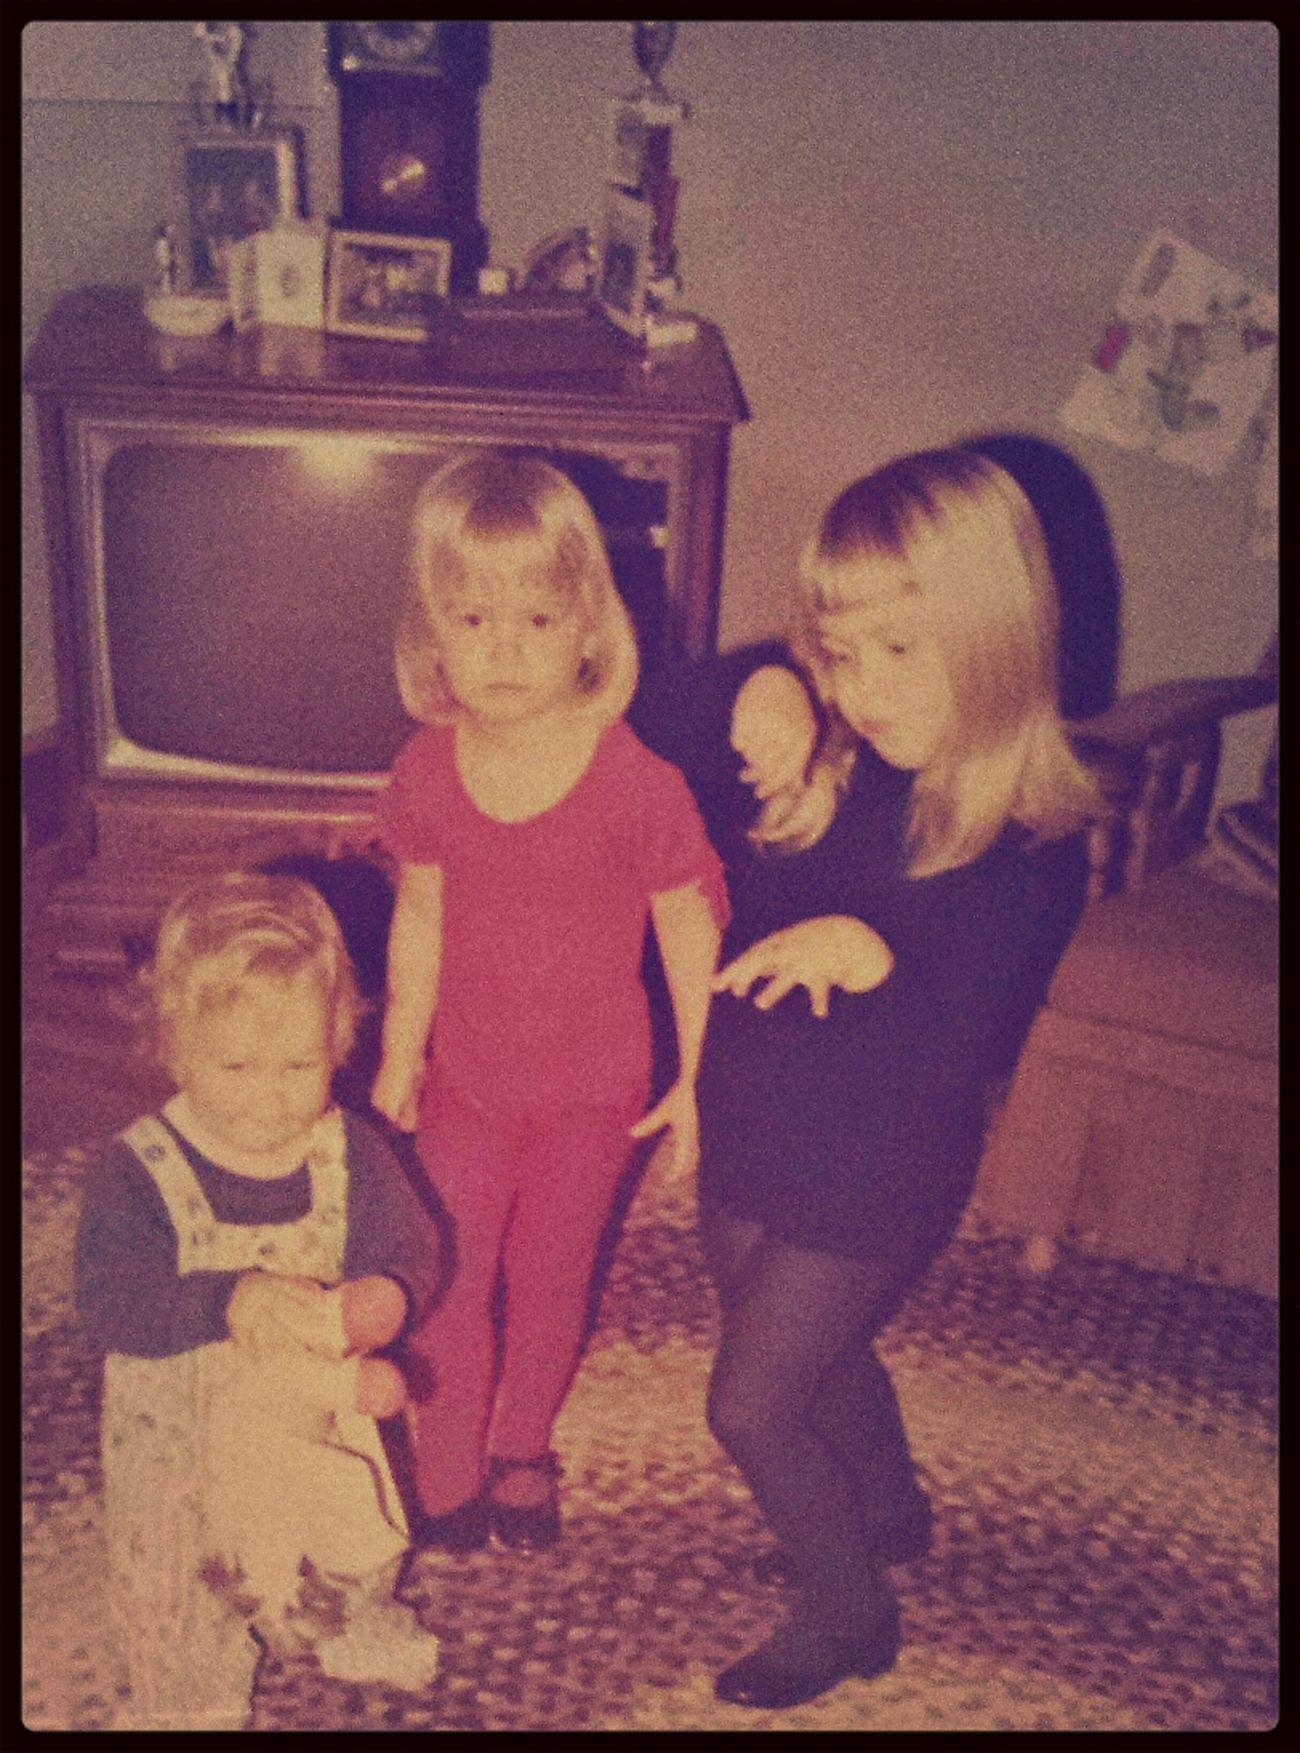 my awesome dance moves were unmistakable even at an early age. That's Me Throwback Old Family Pictures ❀ The 70's ❀